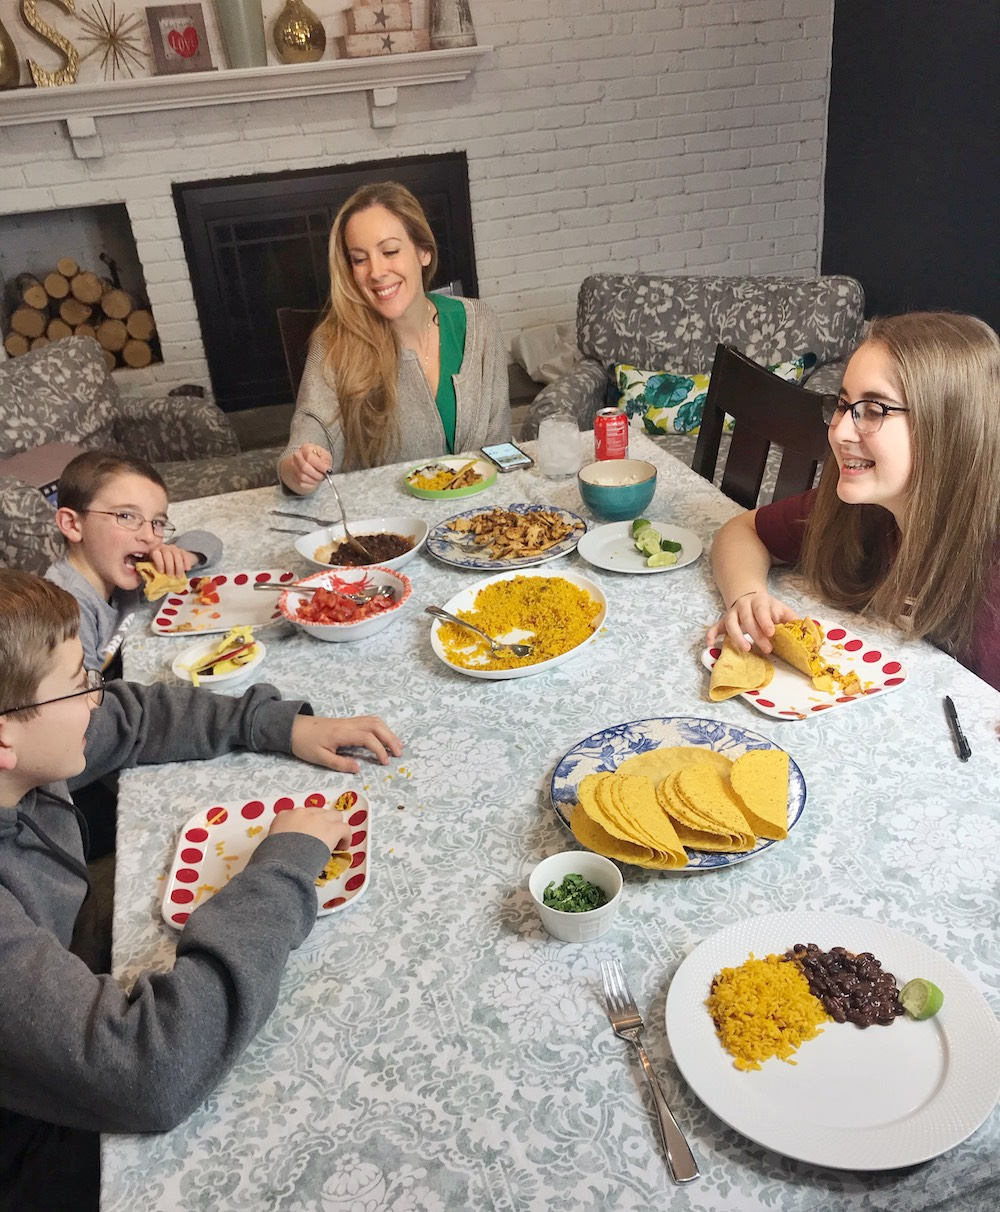 Family eating meal with BUSH'S Savory Beans